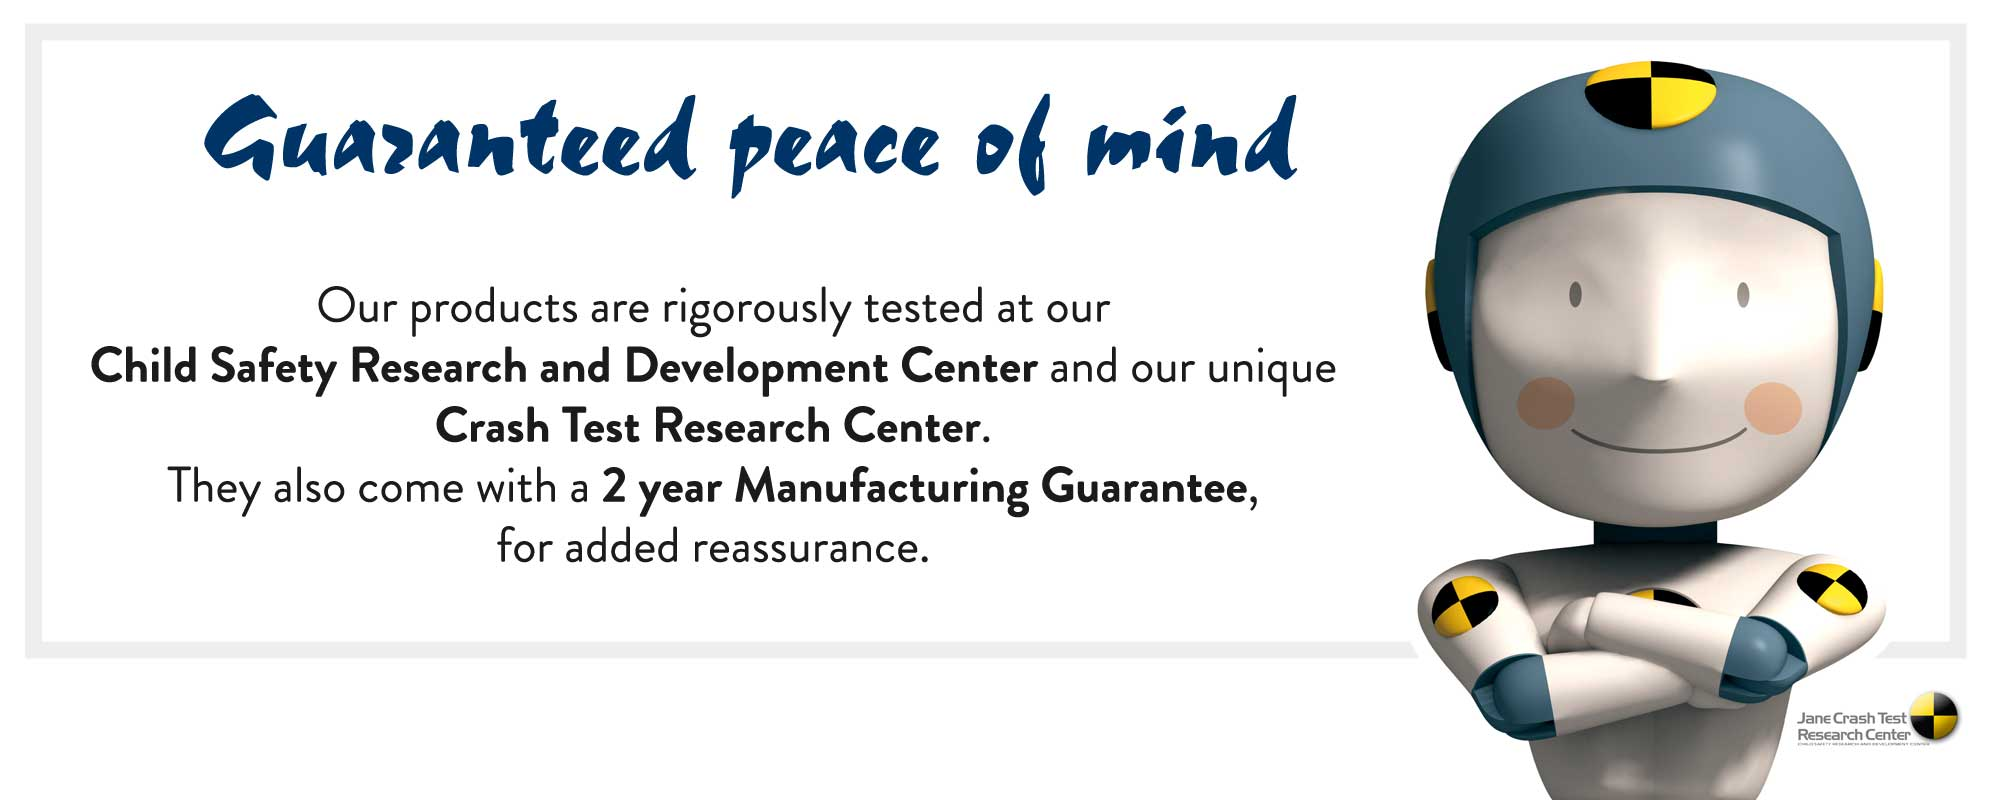 Jané Guarantee Our products are rigorously tested at our Child Safety Research and Development Center and our unique Crash Test research Center. They also come with a 2 year Manufacturing Guarantee, for added reassurance.